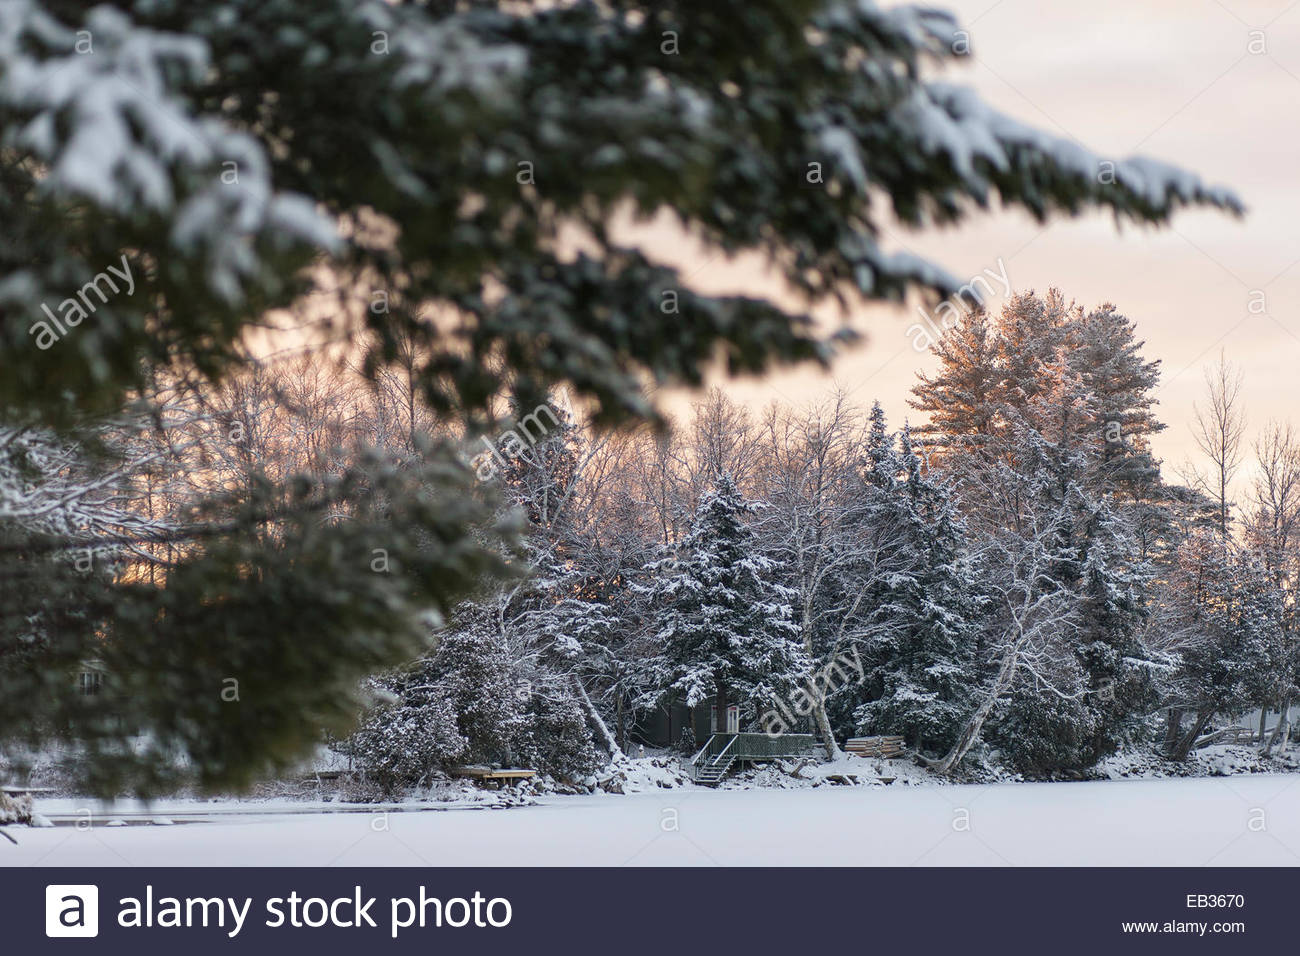 Trees along a frozen lake are covered in new snow at sunrise. - Stock Image